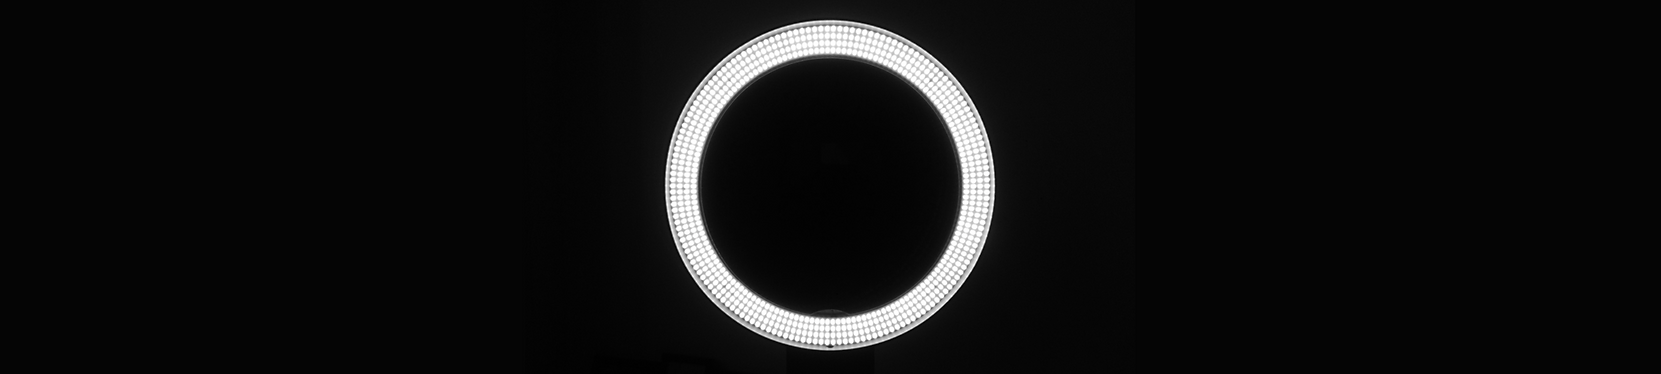 Gif Booth, Phoo Booth, LED Ring Light